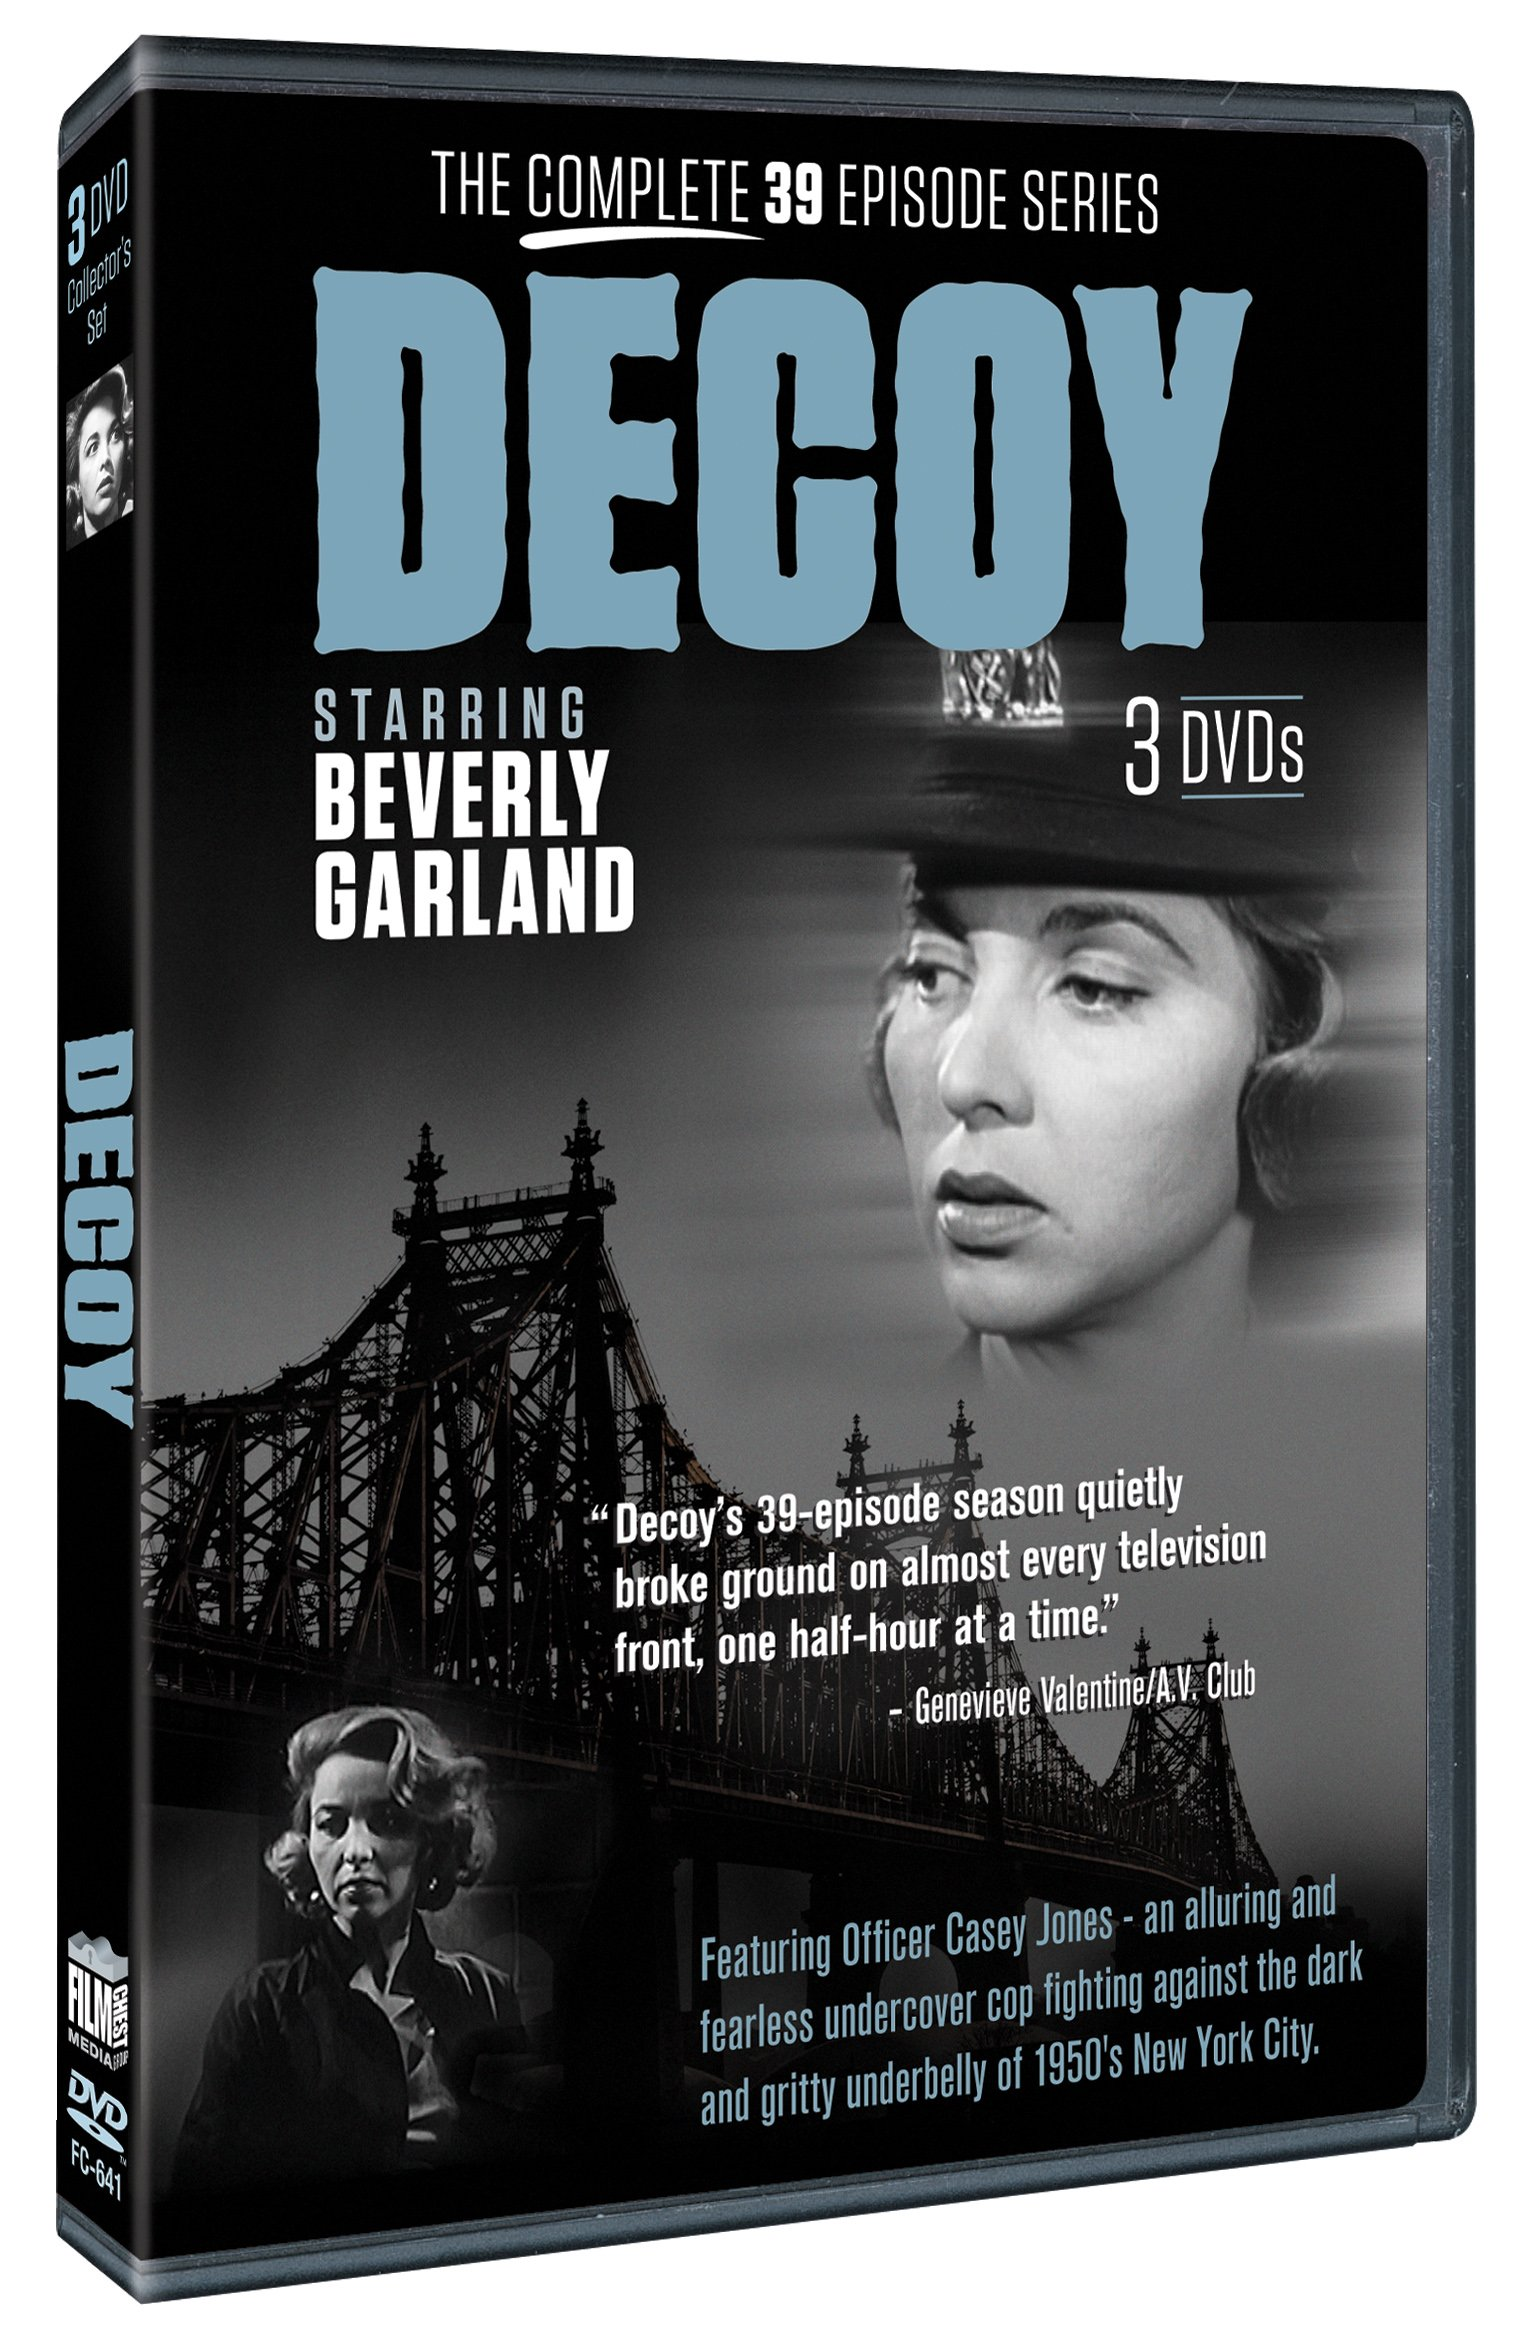 Decoy: The Only Package with ALL 39 Episodes Available!